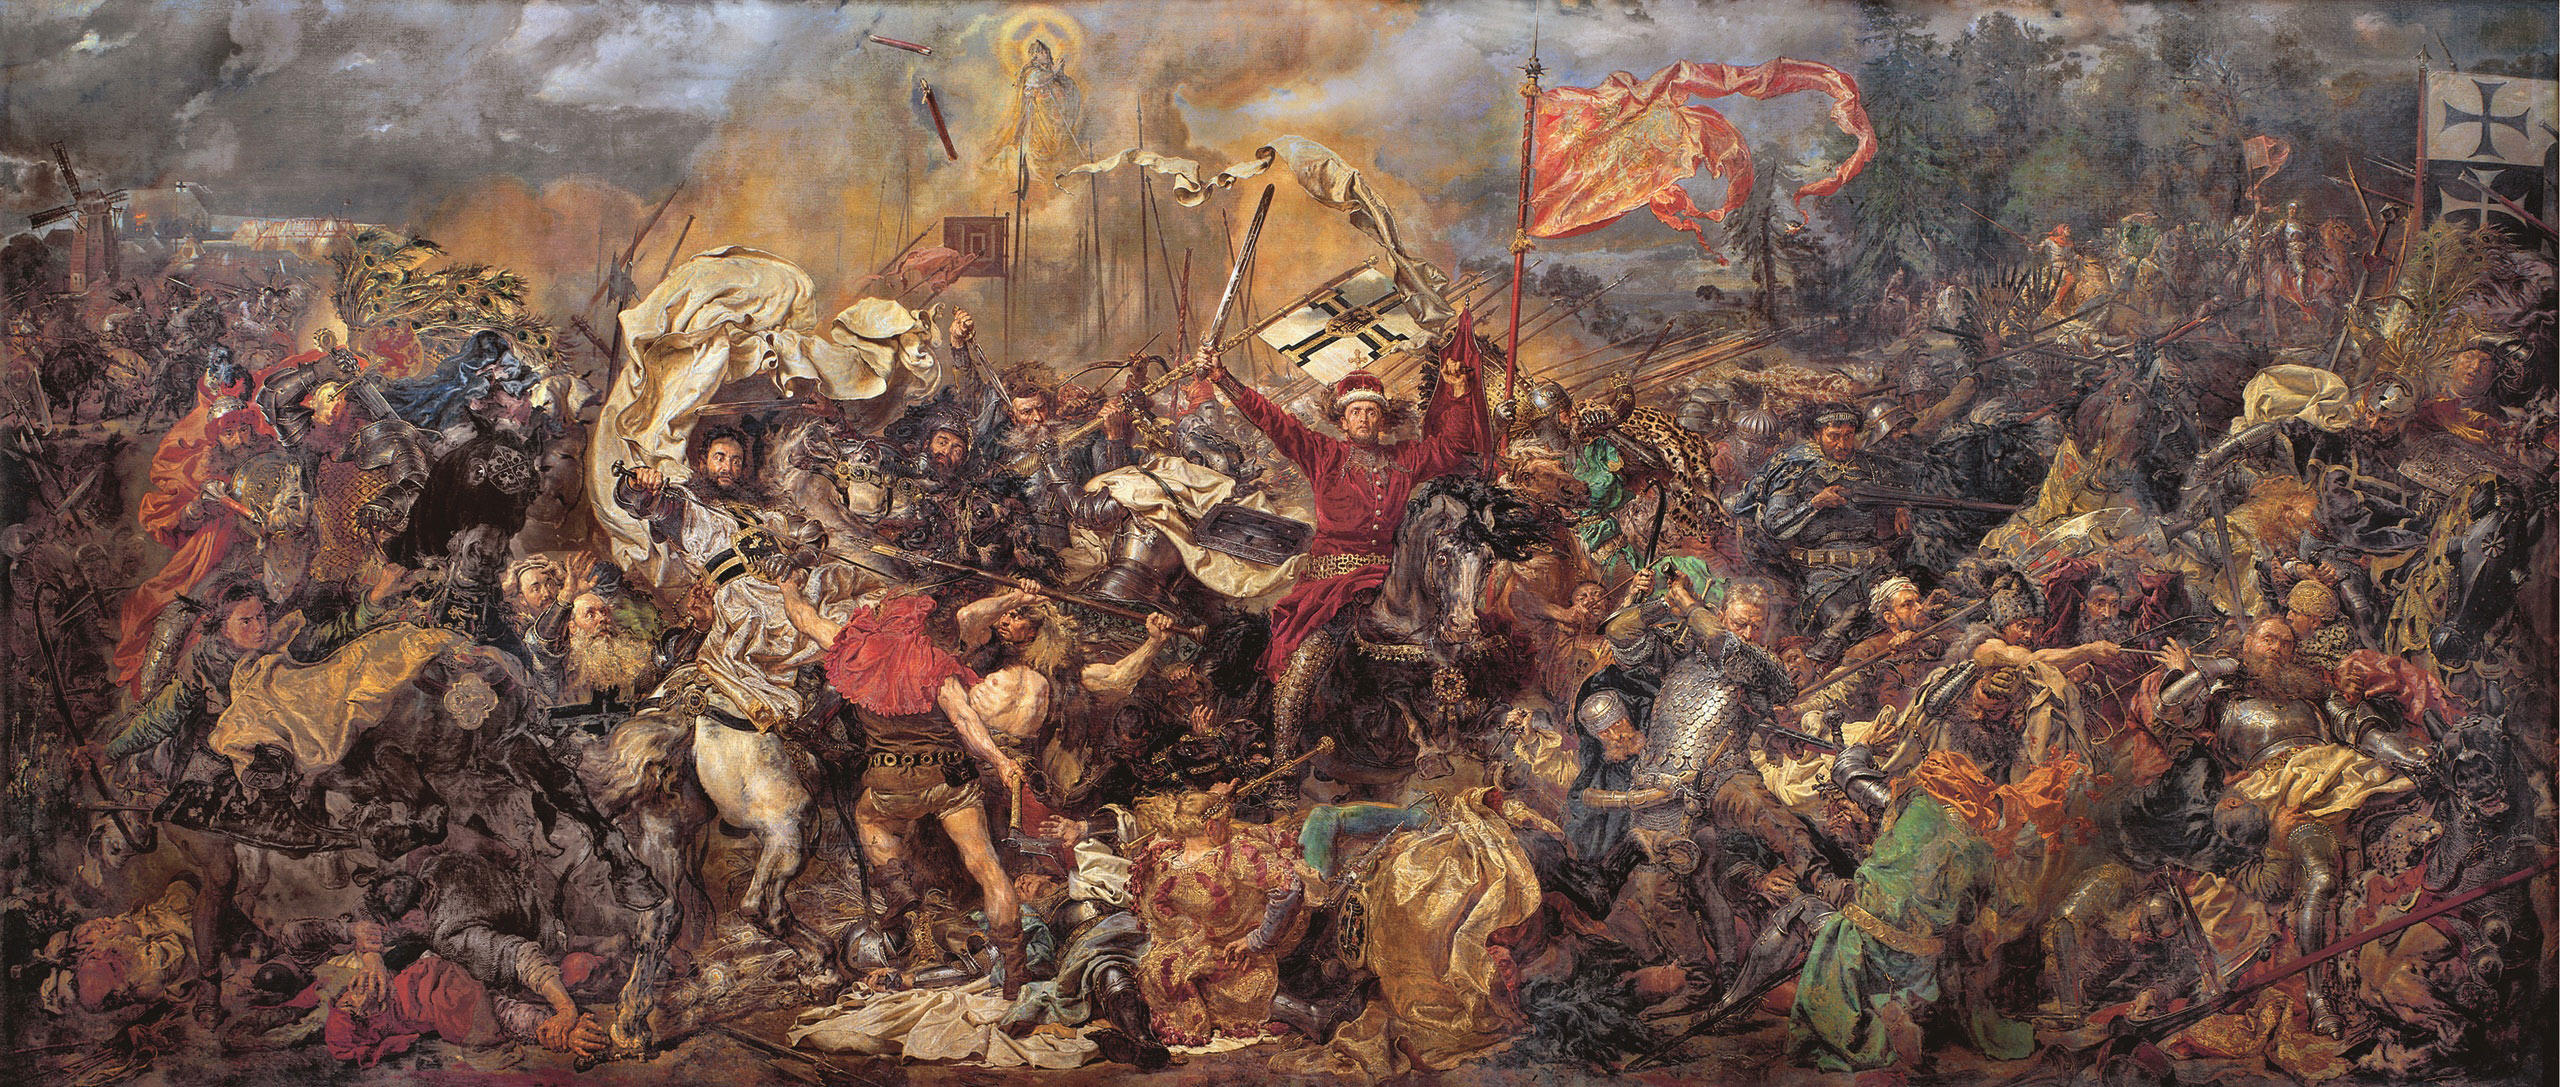 Battle_of_Grunwald picture